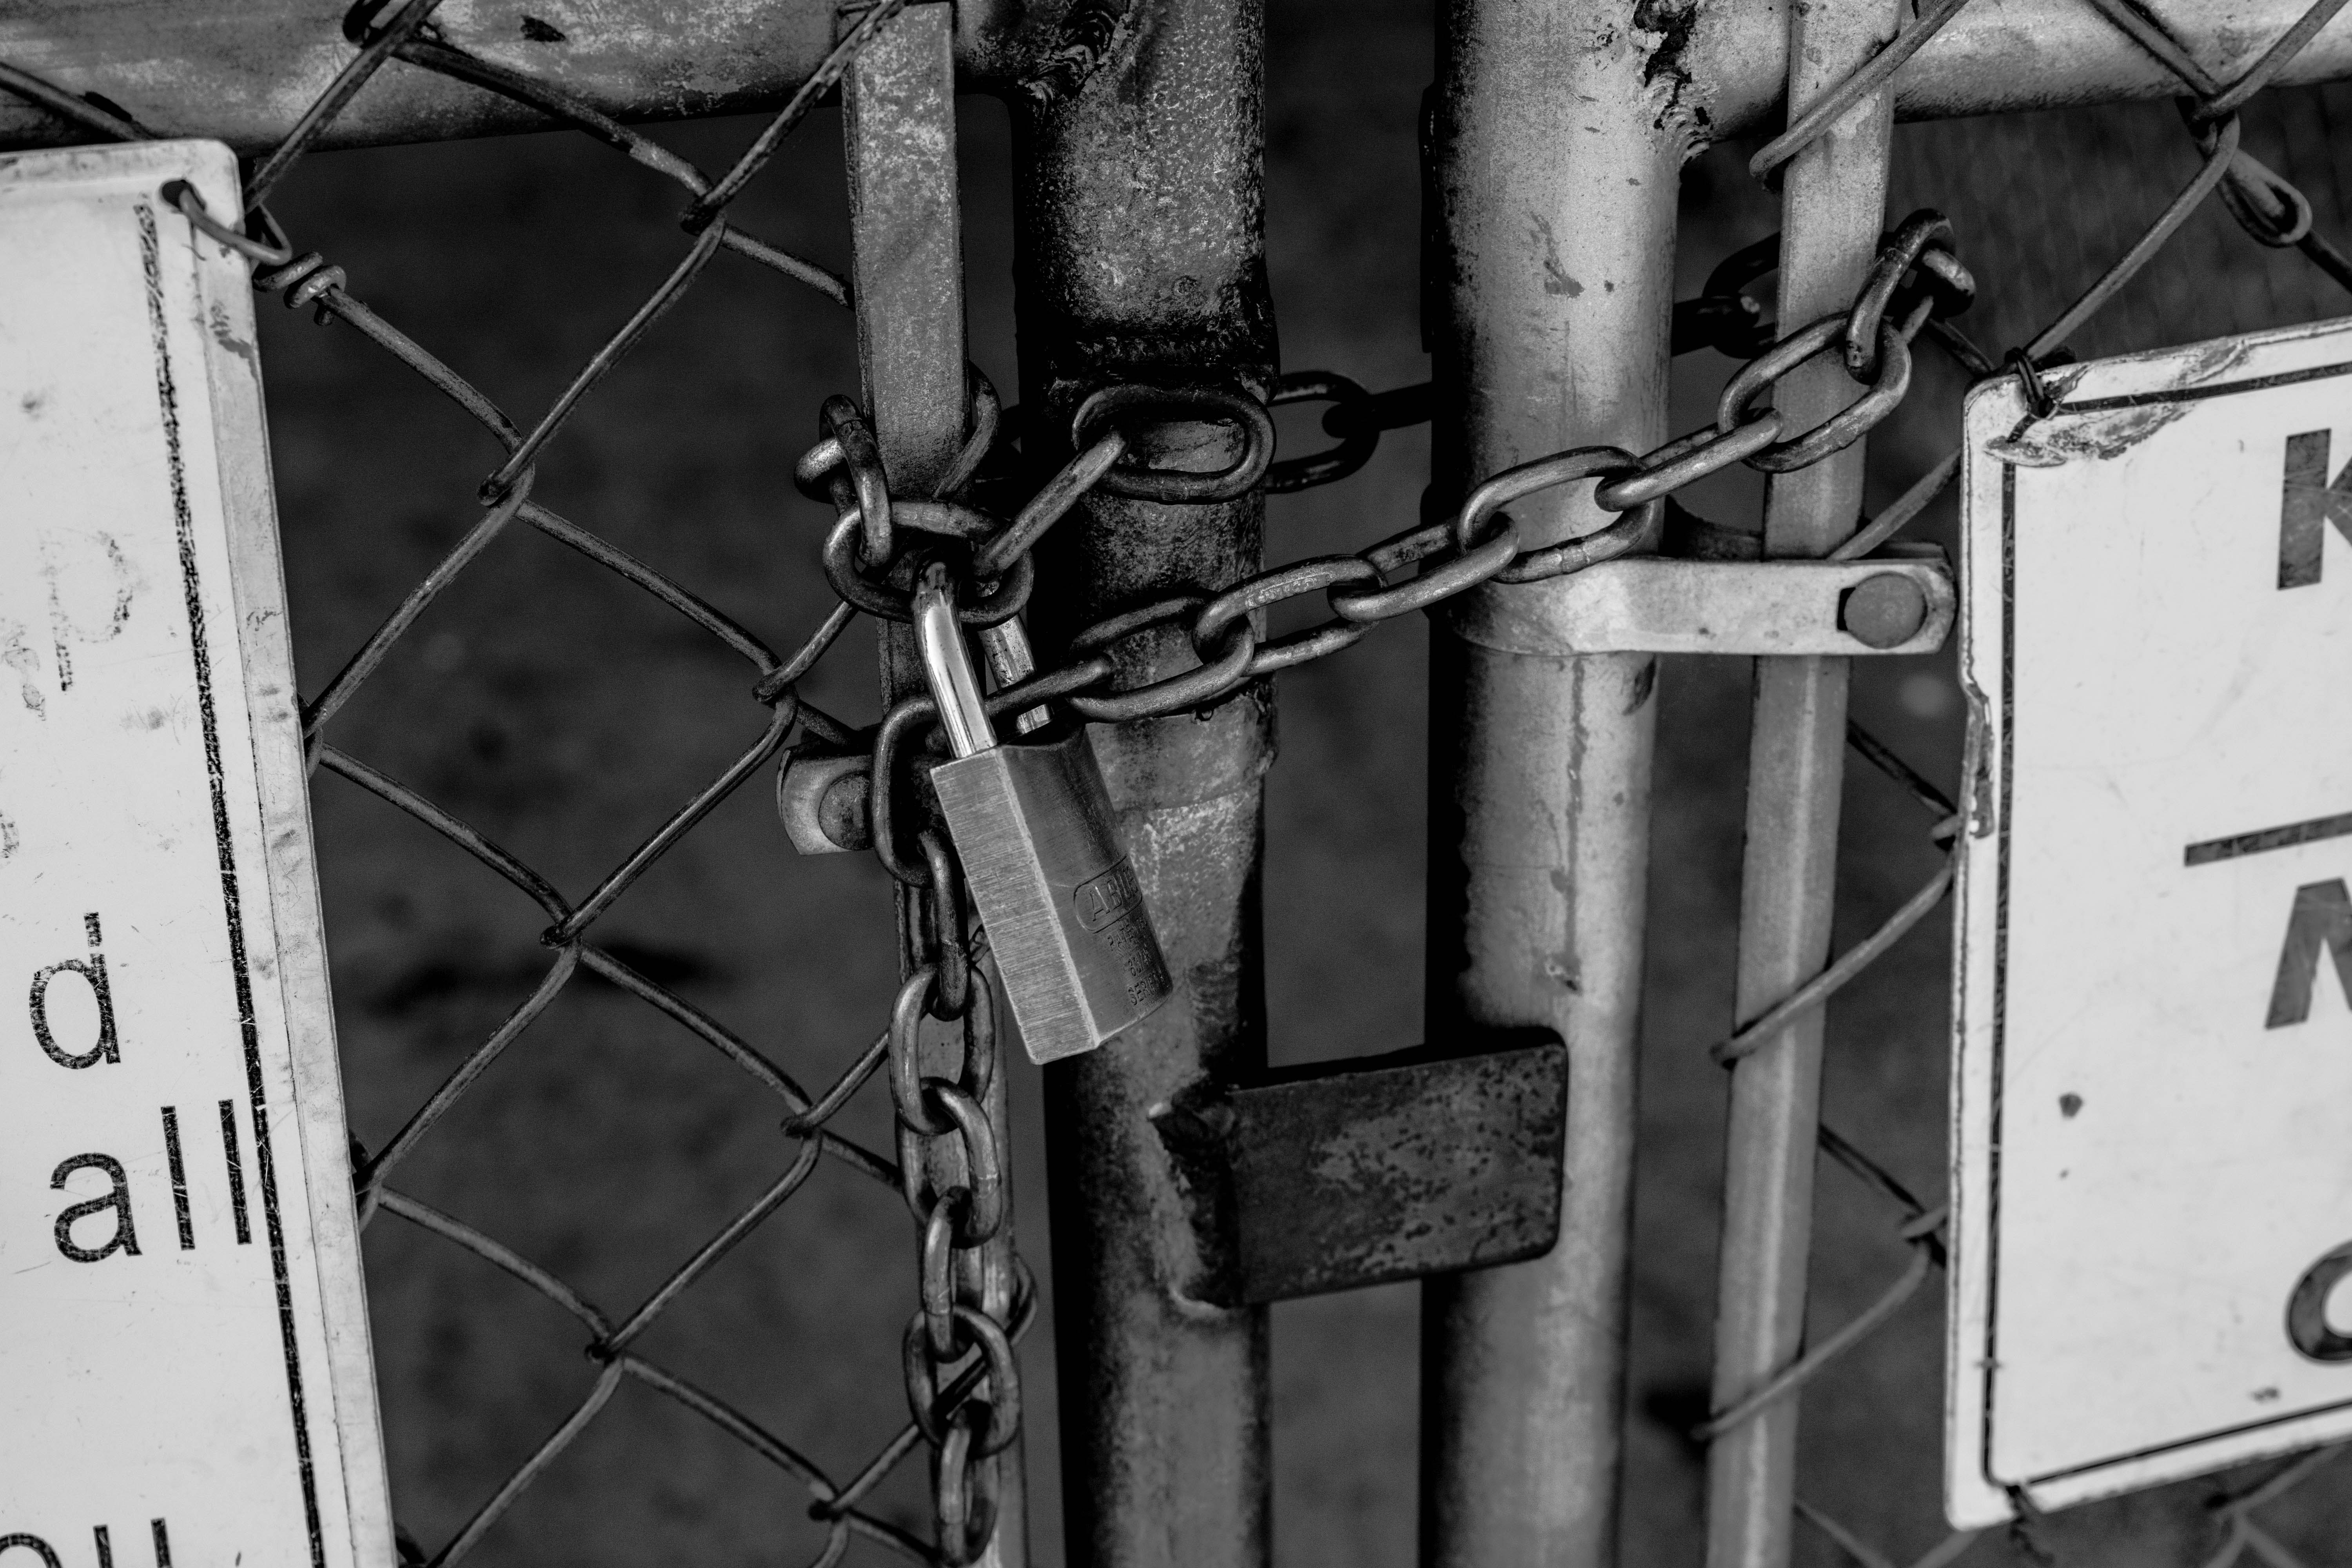 grayscale photo of chain and padlock